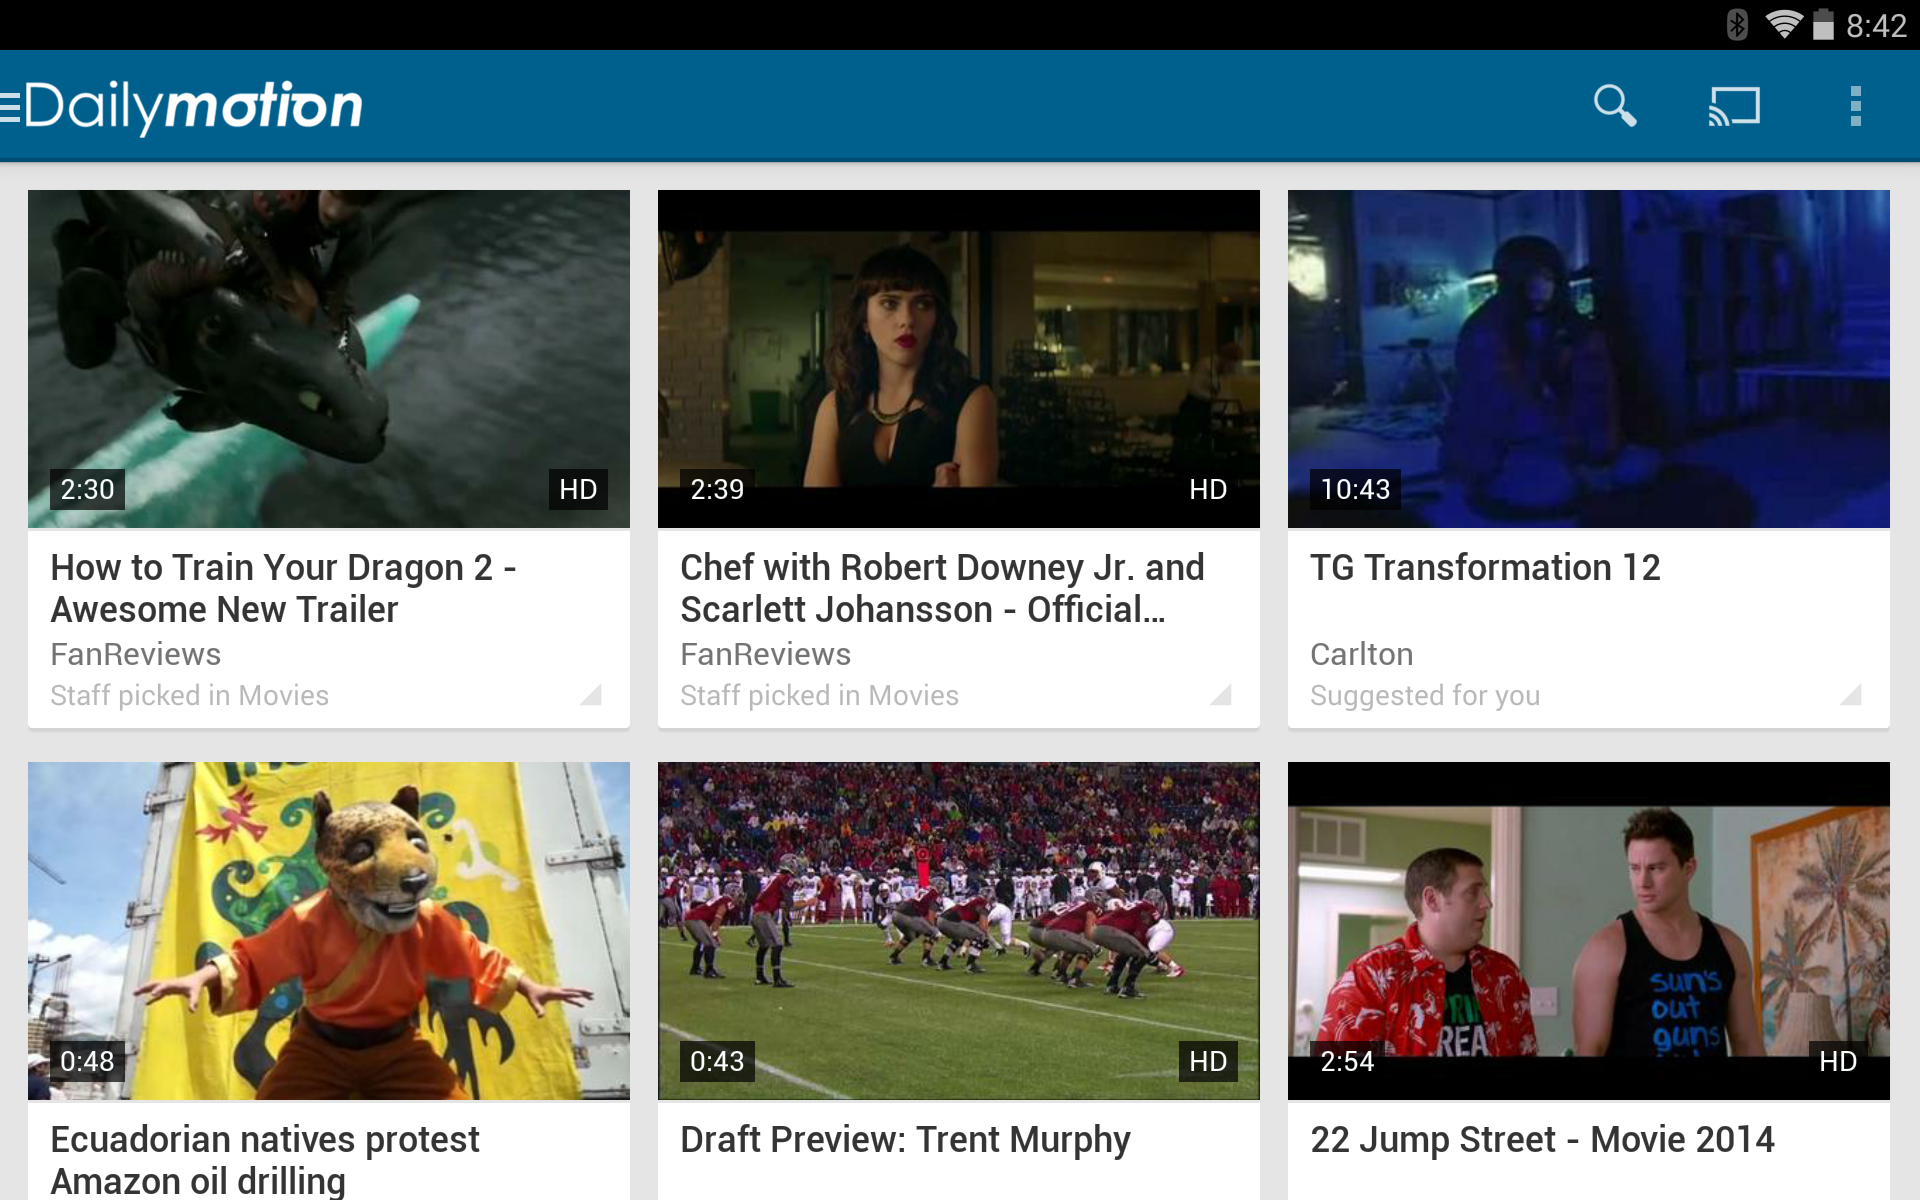 Dailymotion Tries Its Hand At Chromecast Streaming With The